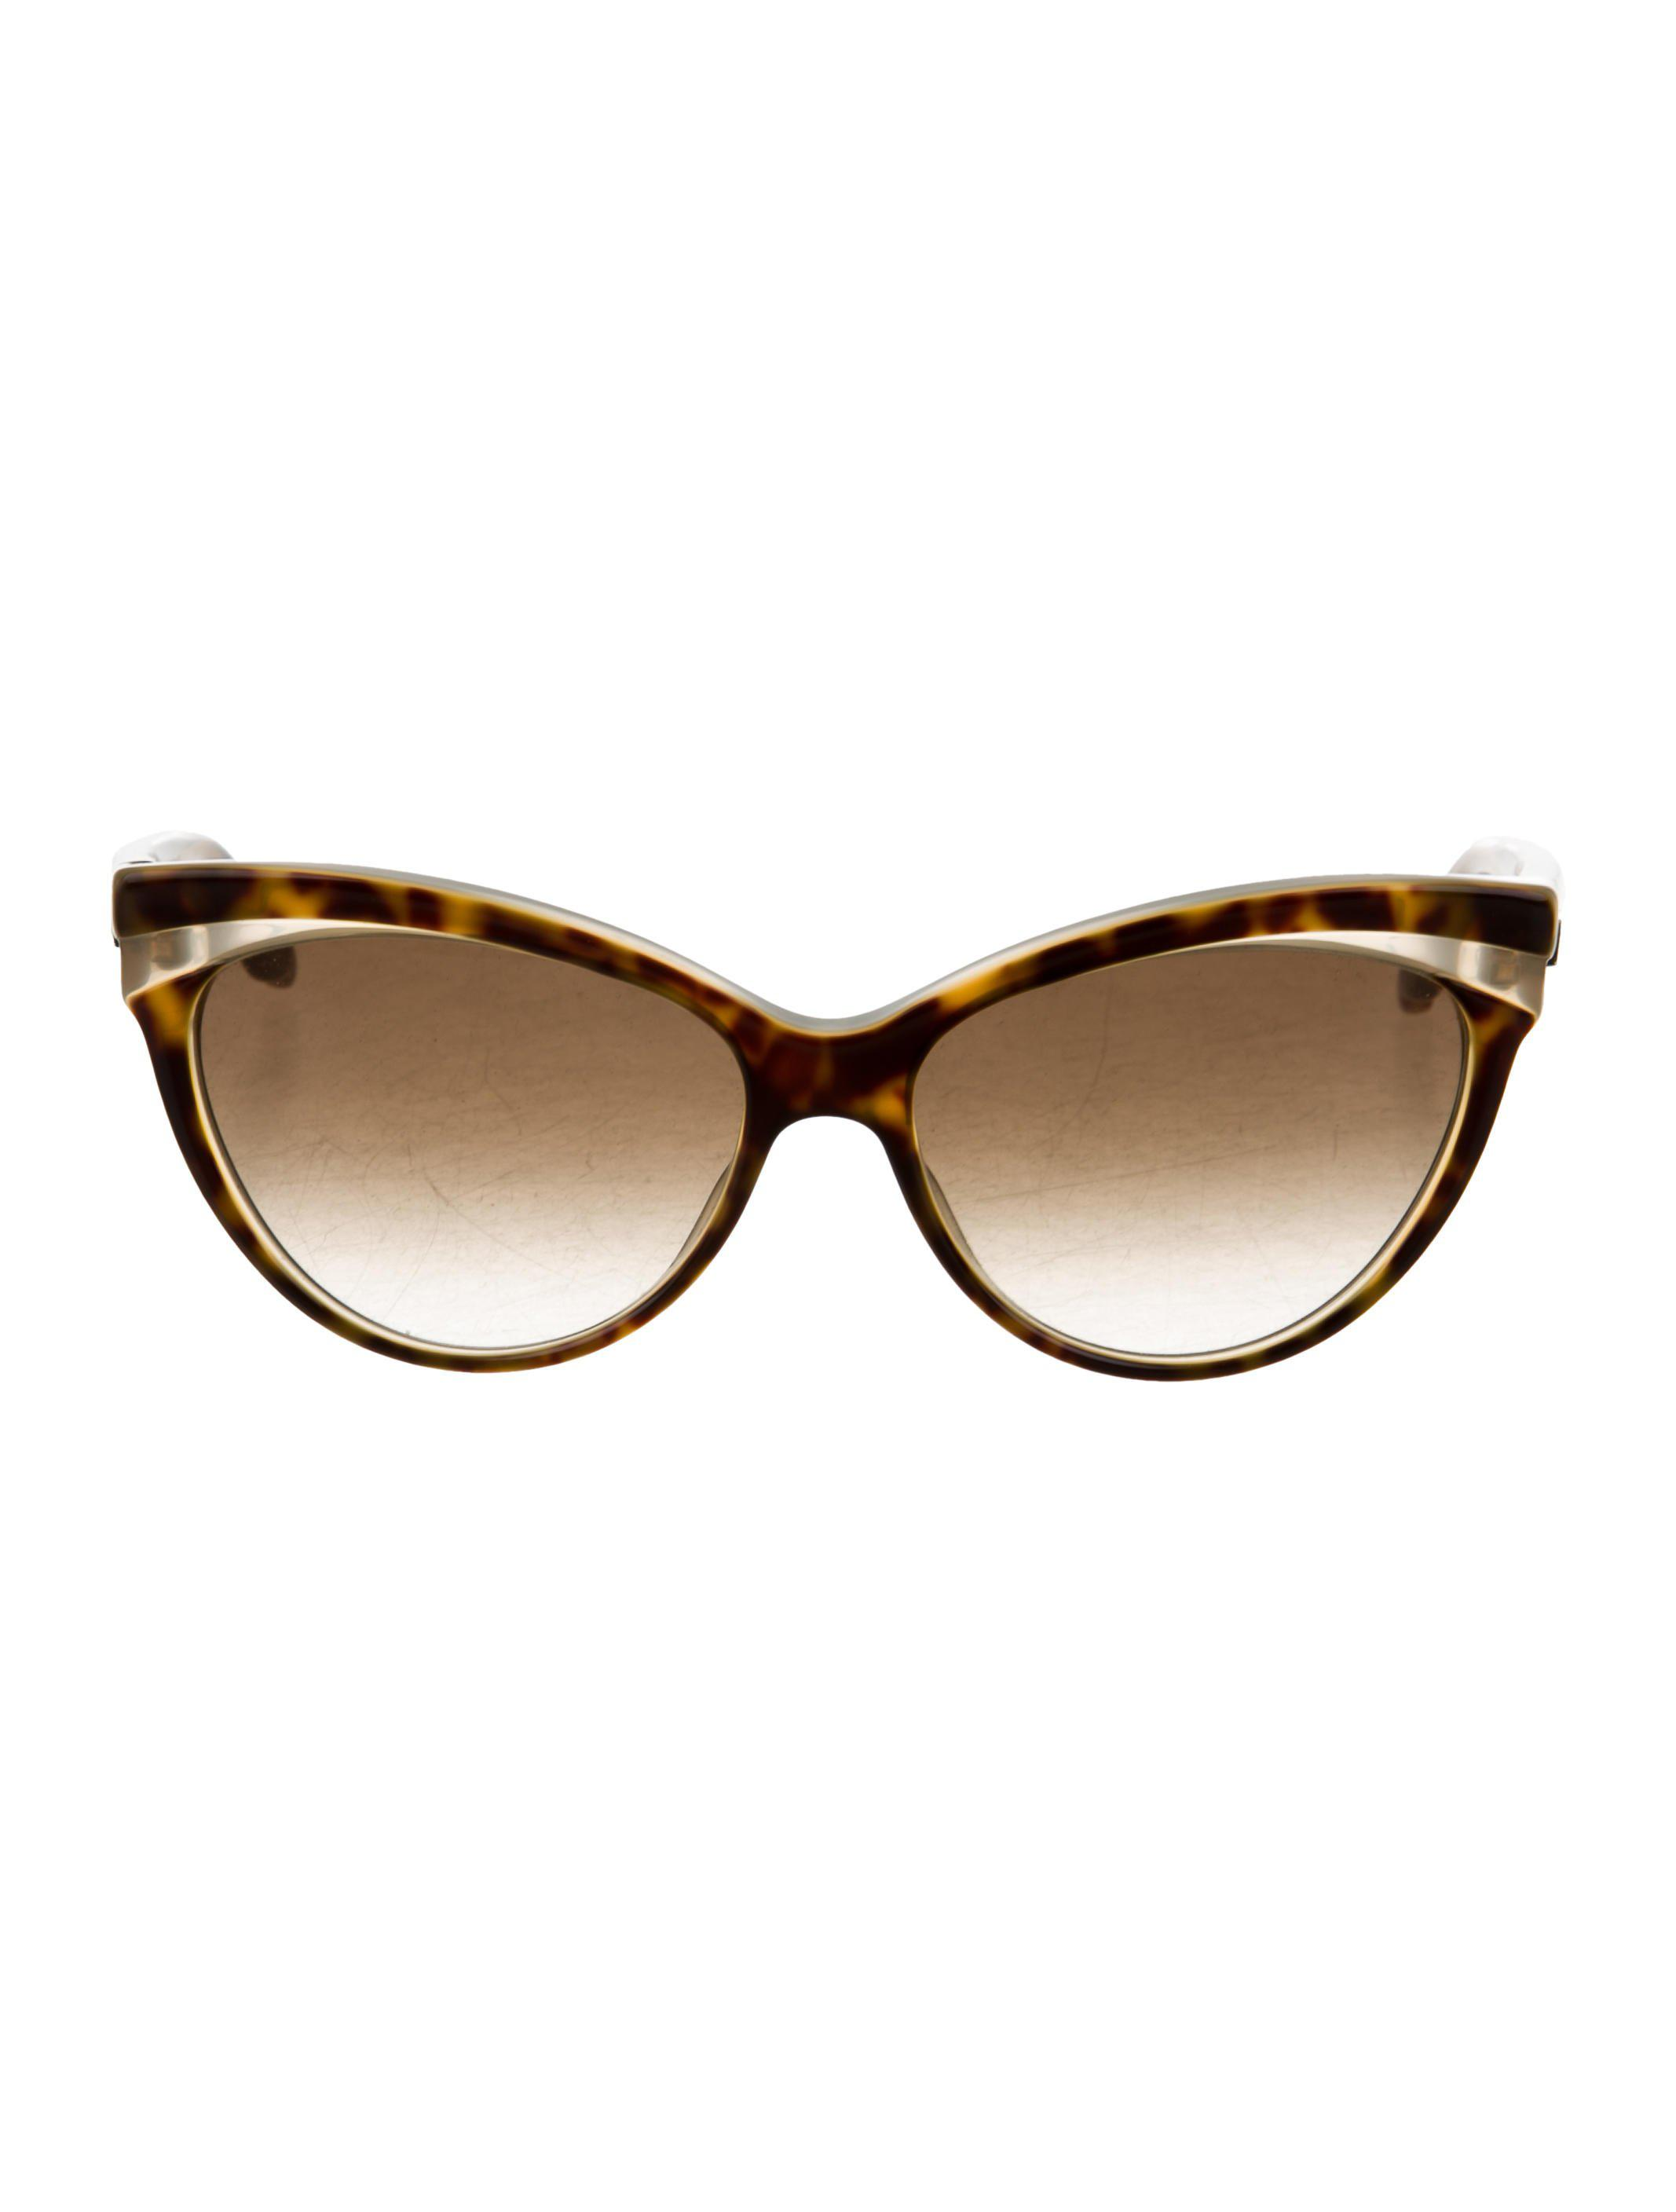 068482ca2df Lyst - Dior Gradient Cat-eye Sunglasses Brown in Natural